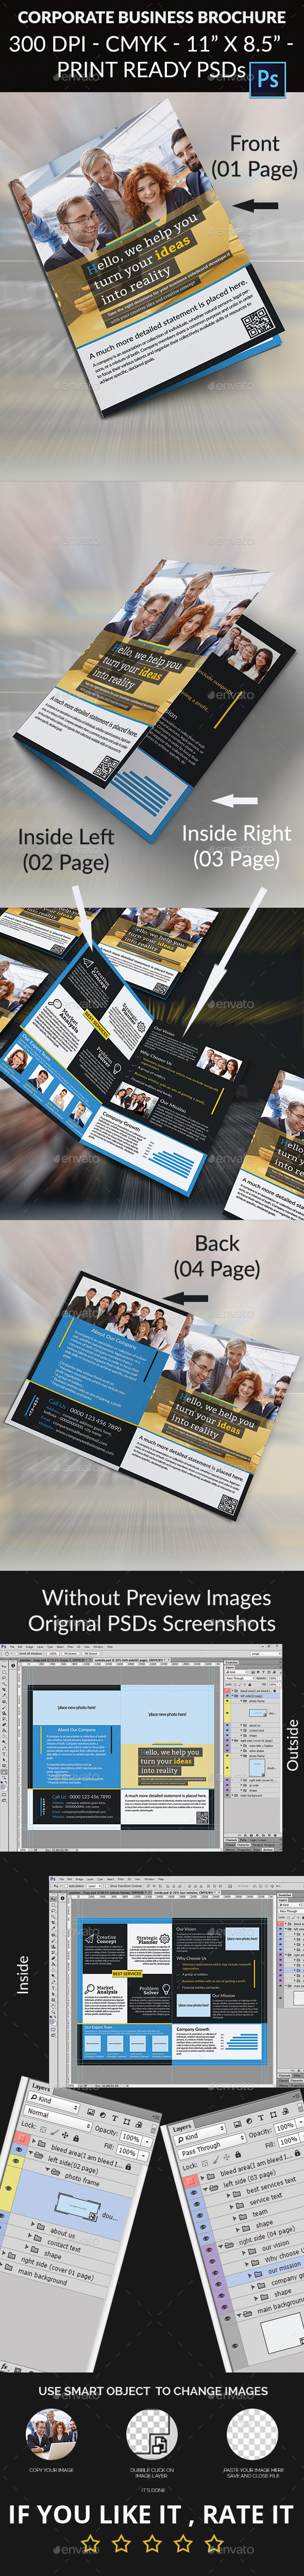 GraphicRiver Corporate Business Brochure 11890486